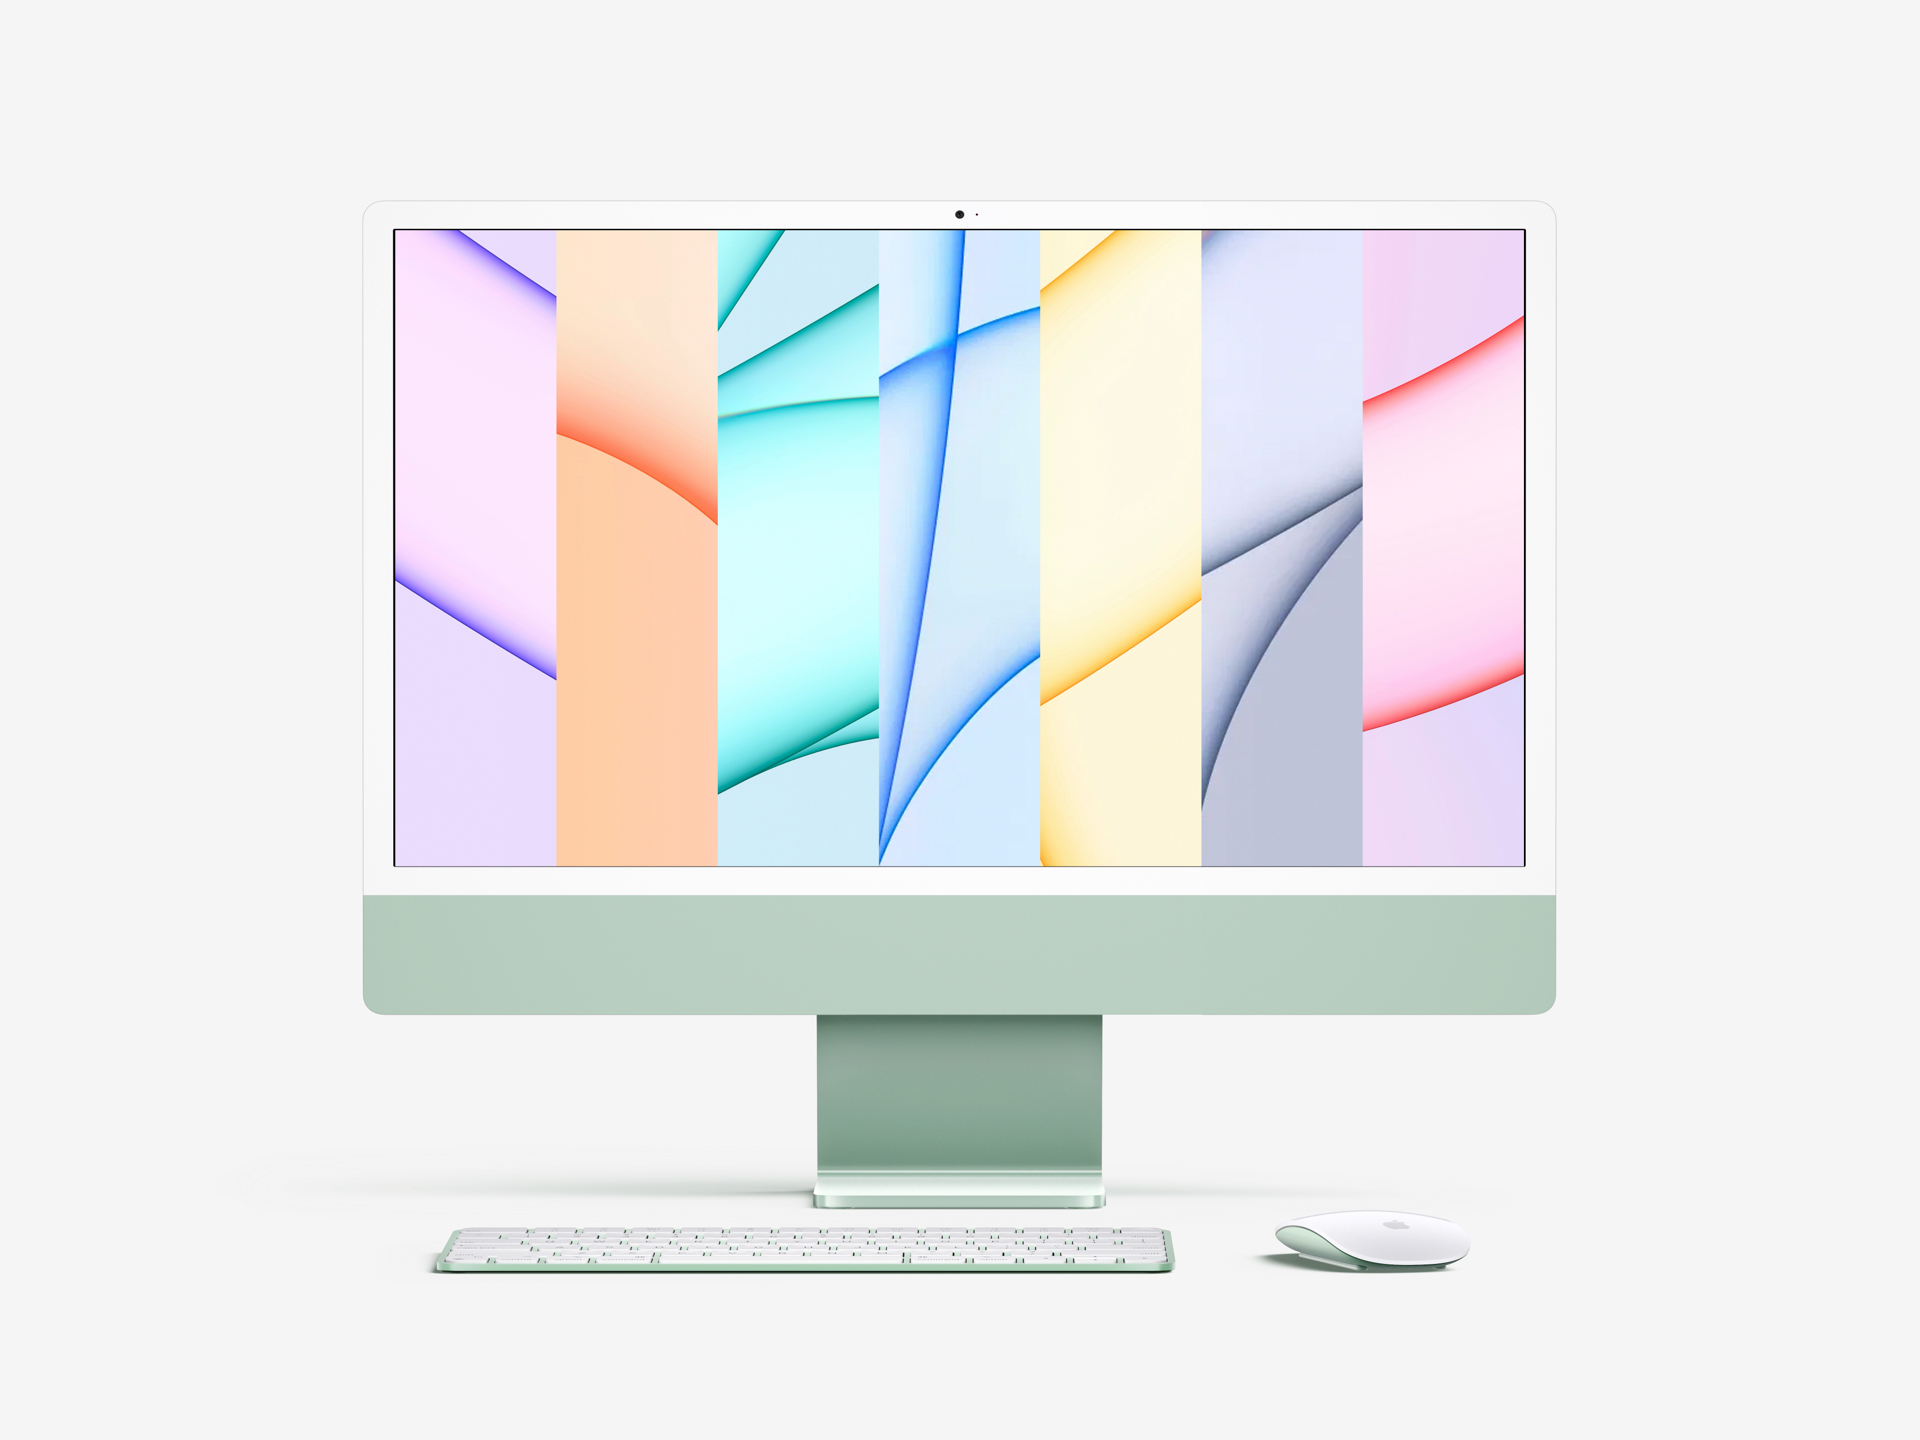 Free iMac 24-inch Mockup (2021) - Meet the new iMac mockup in a premium quality and 7 color styles. You can easily customize this photorealistic mockup, thanks to smart layers function.